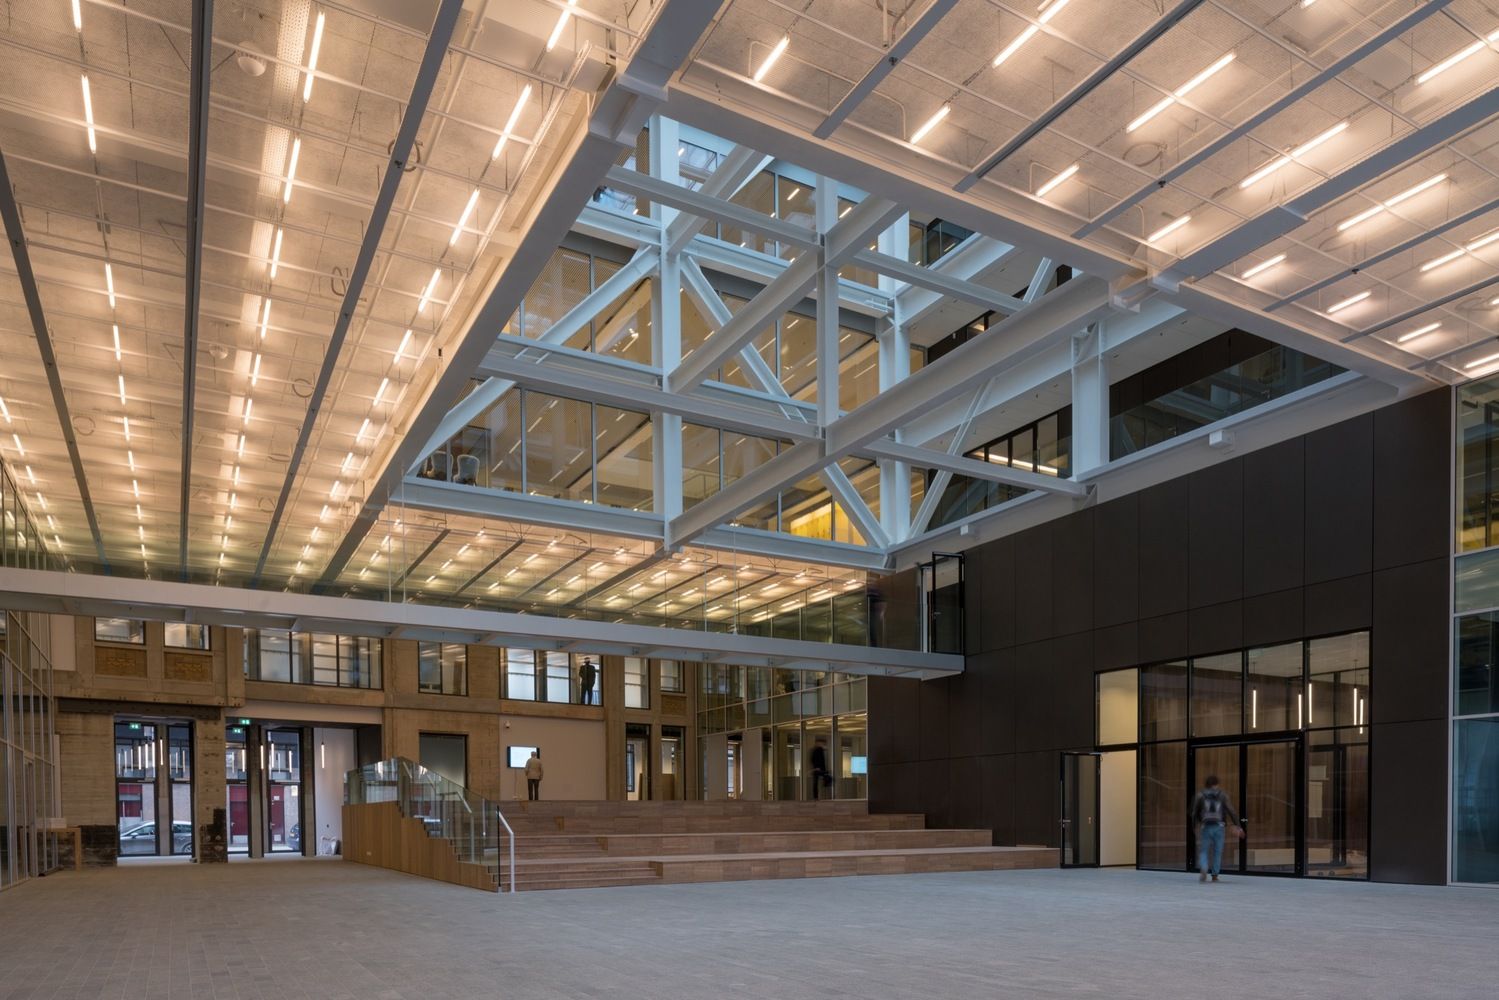 Gallery of Timmerhuis / OMA - 13